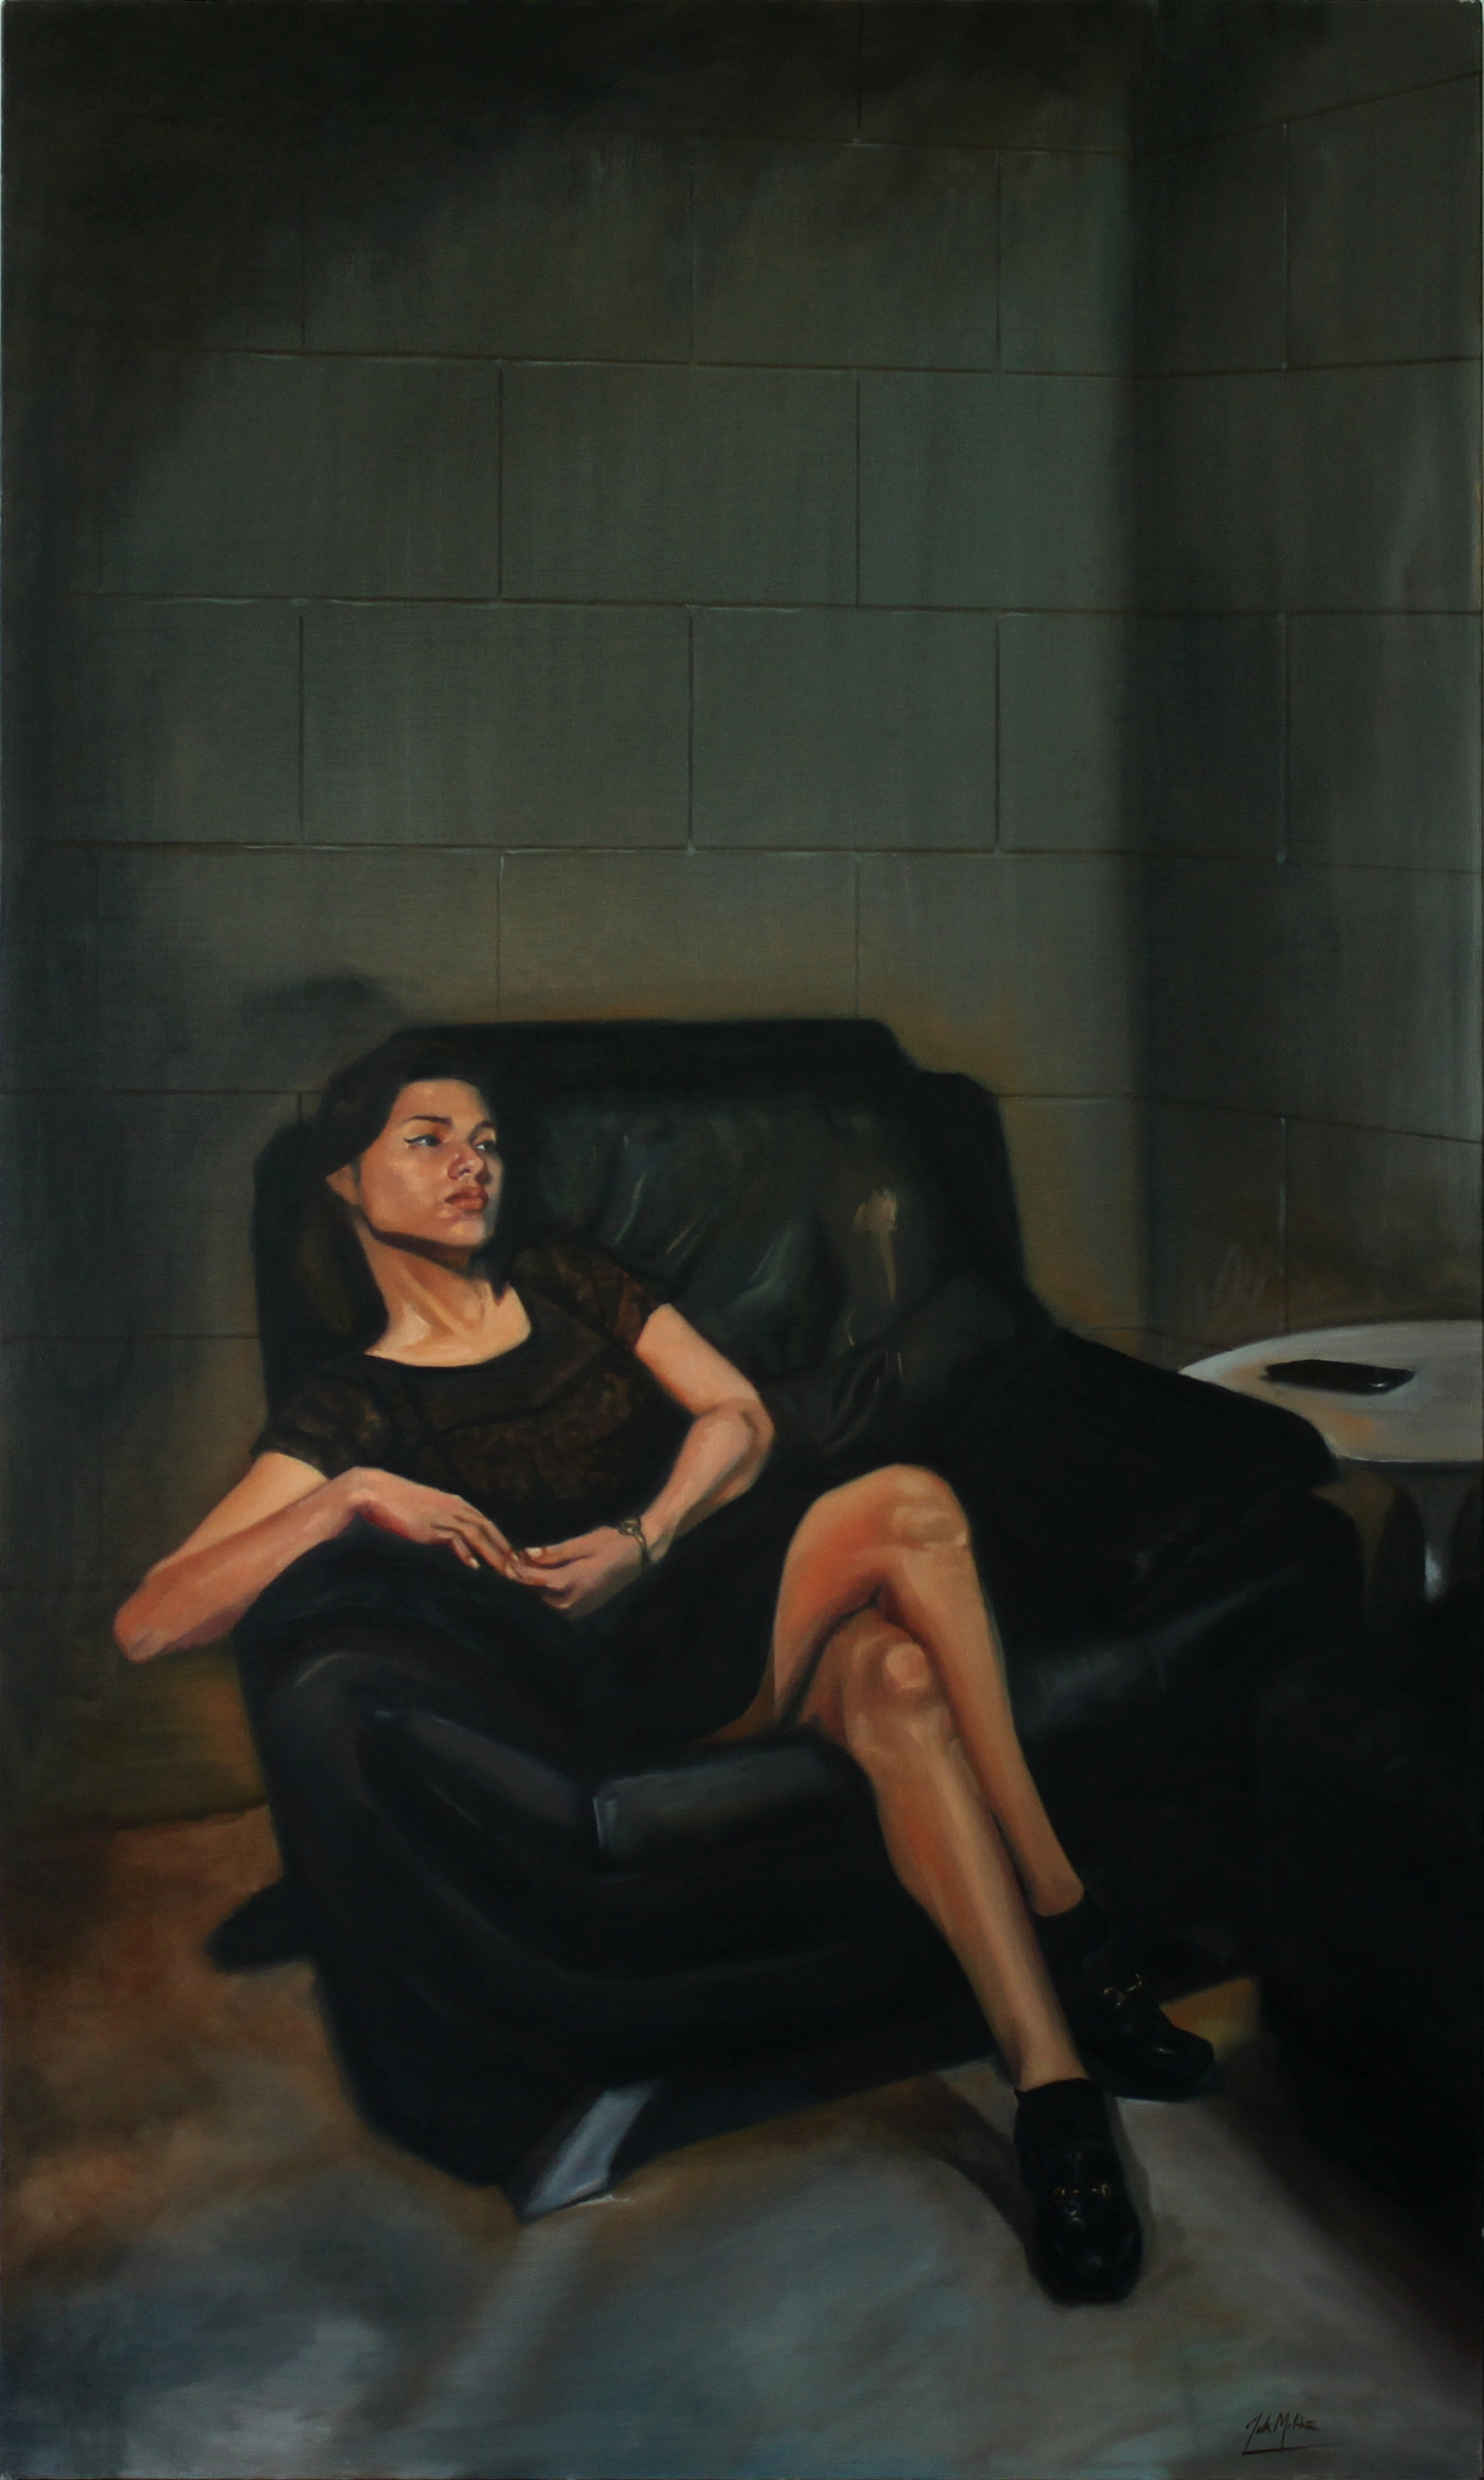 Void, 2014, oil on canvas, 60 x 36 inches